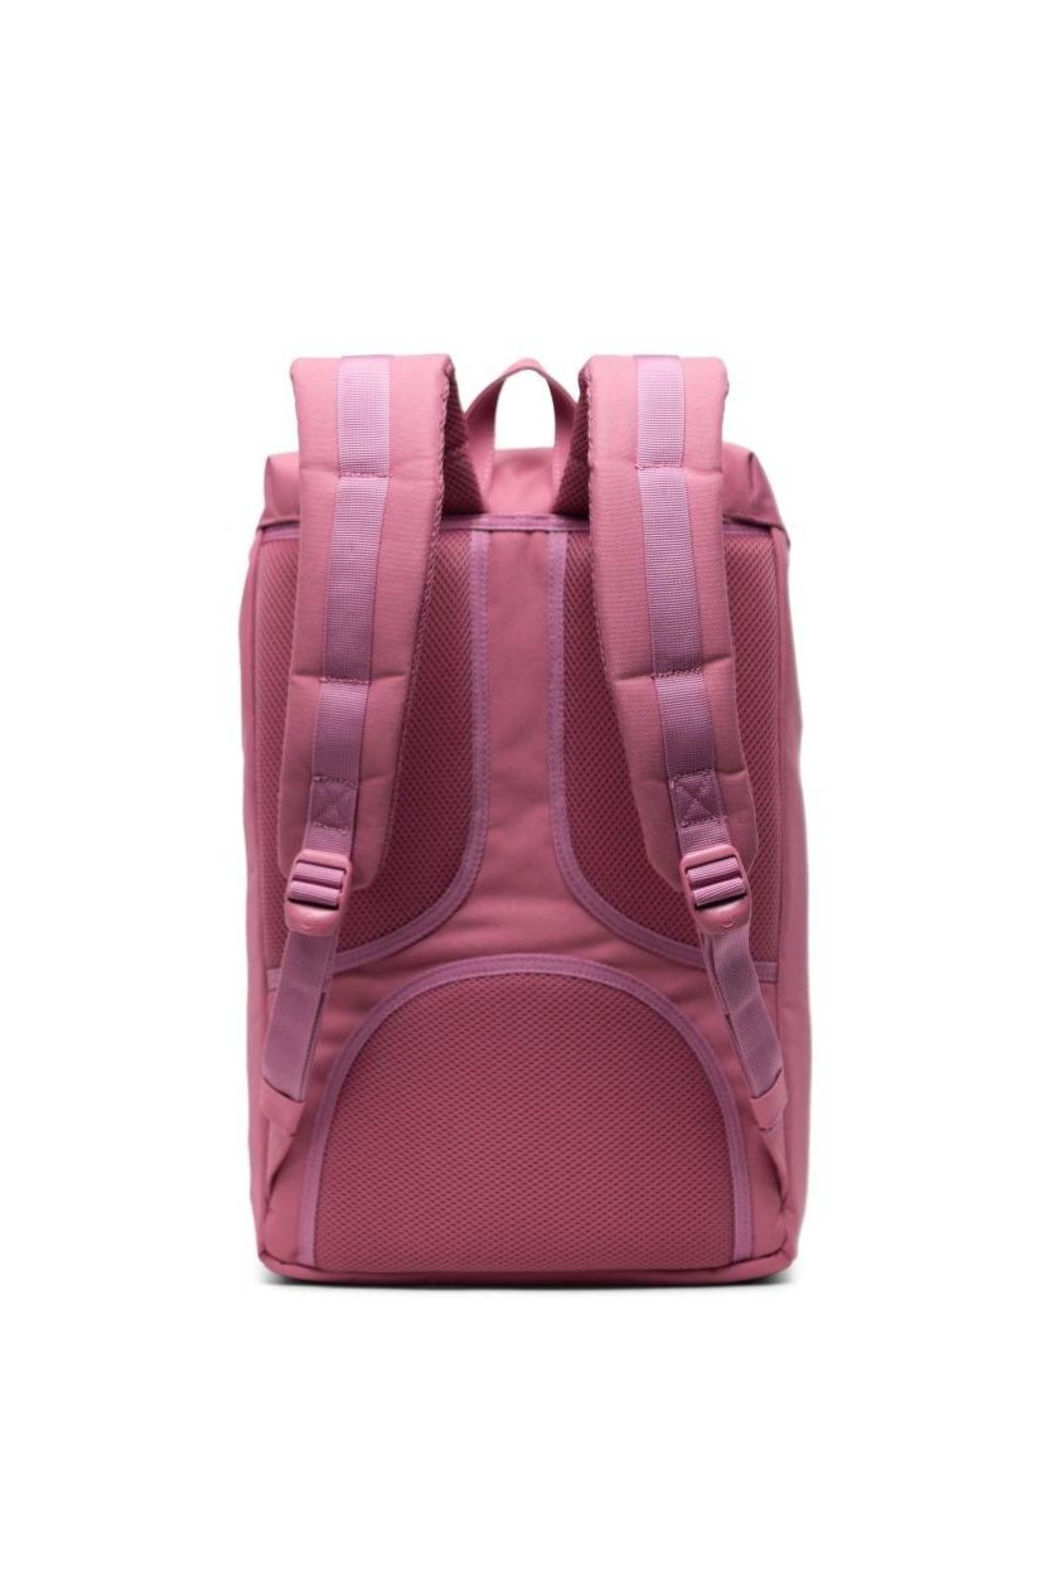 Herschel Supply Co. Mid-Sized Pink Backpack - Back Cropped Image